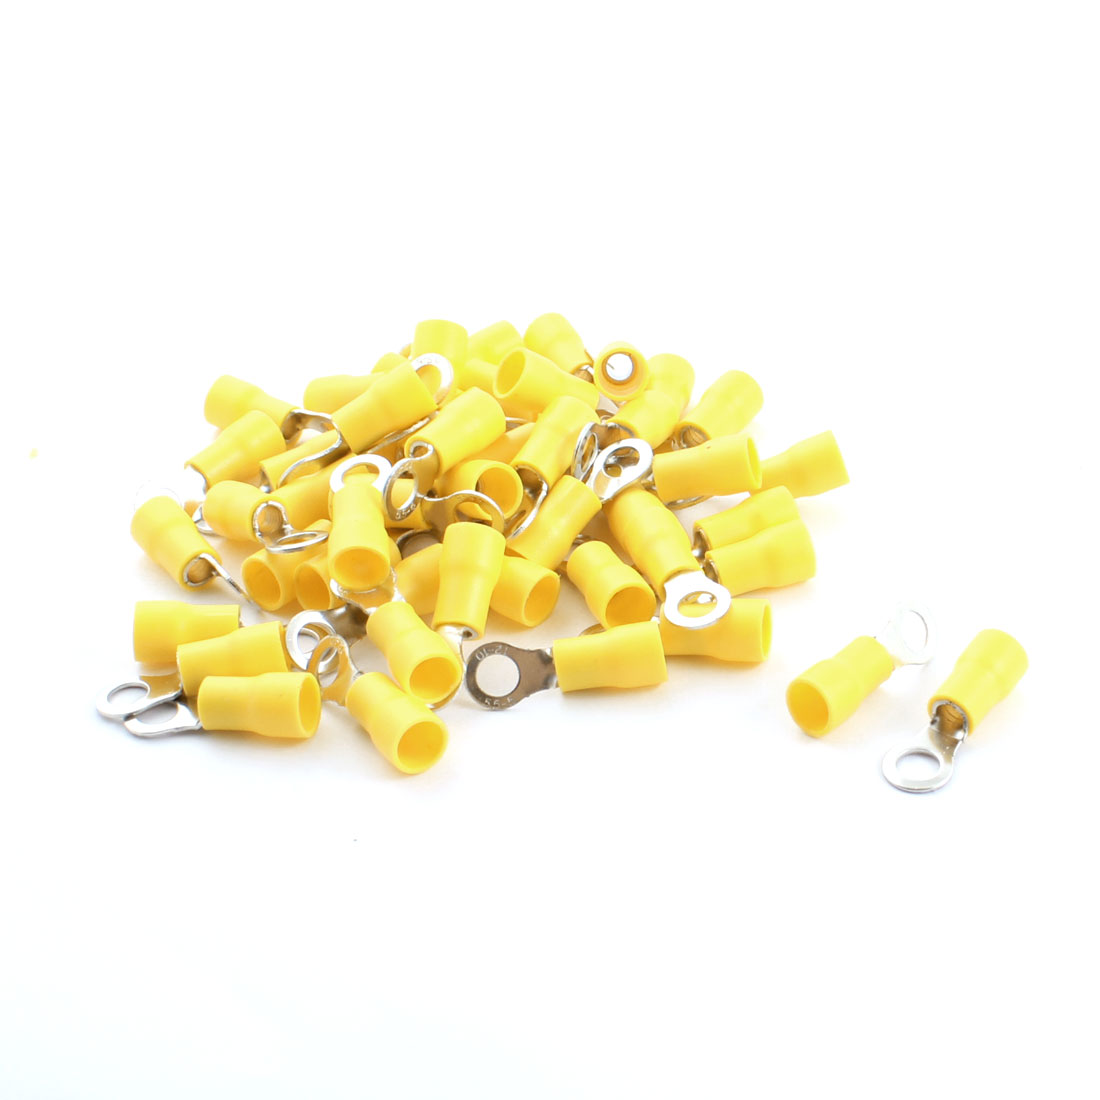 RV5.5-5 48A Yellow Pre Insulated Electrical Ring Crimp Terminal Cable Wire Connector 6.4mm 12-10AWG 50Pcs